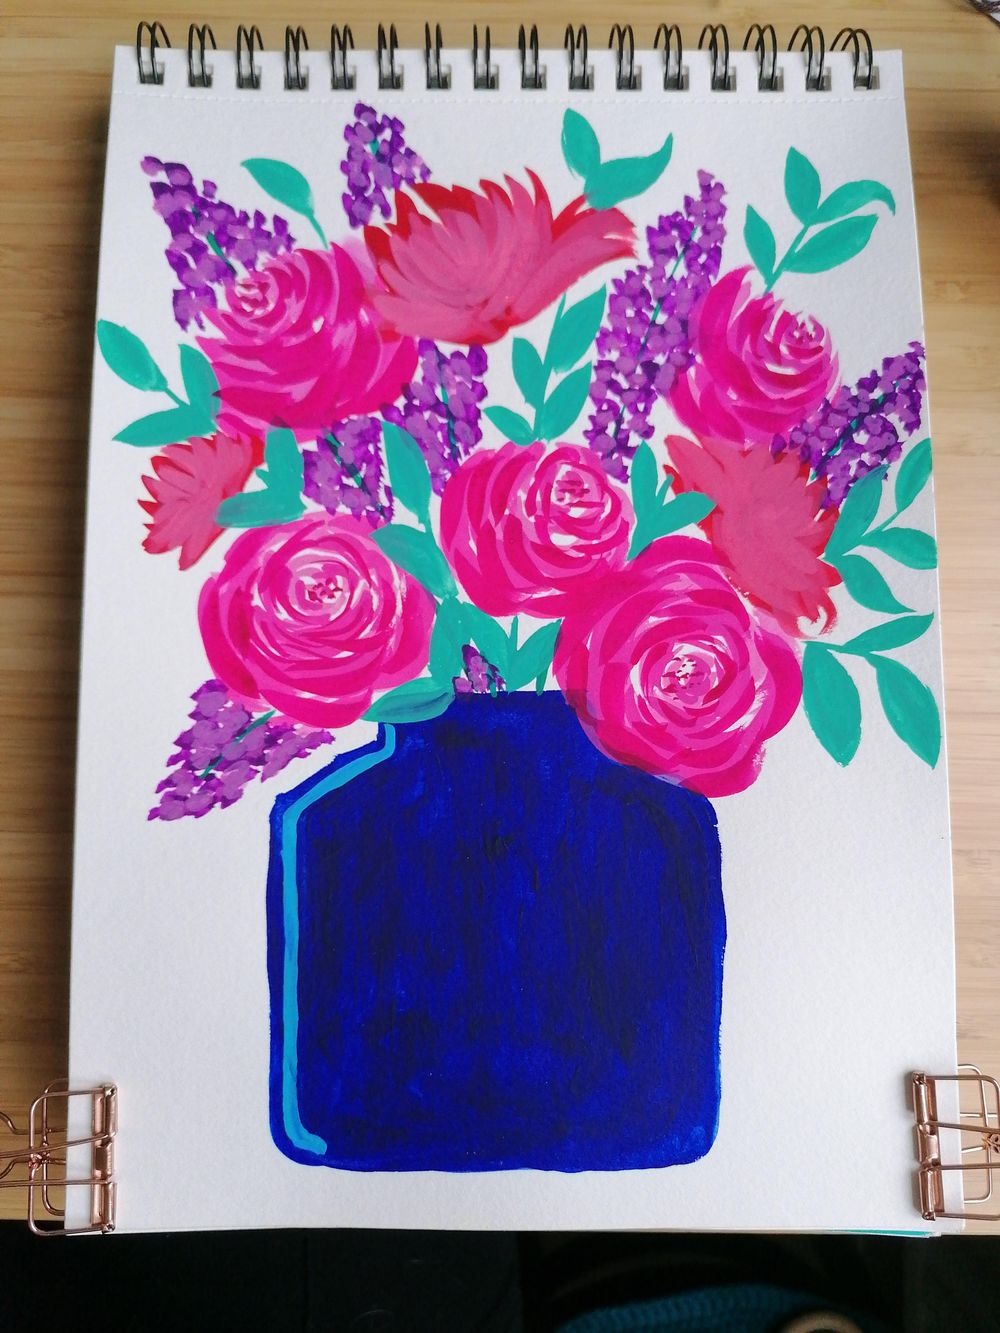 Flower bouquet with gouache - image 4 - student project